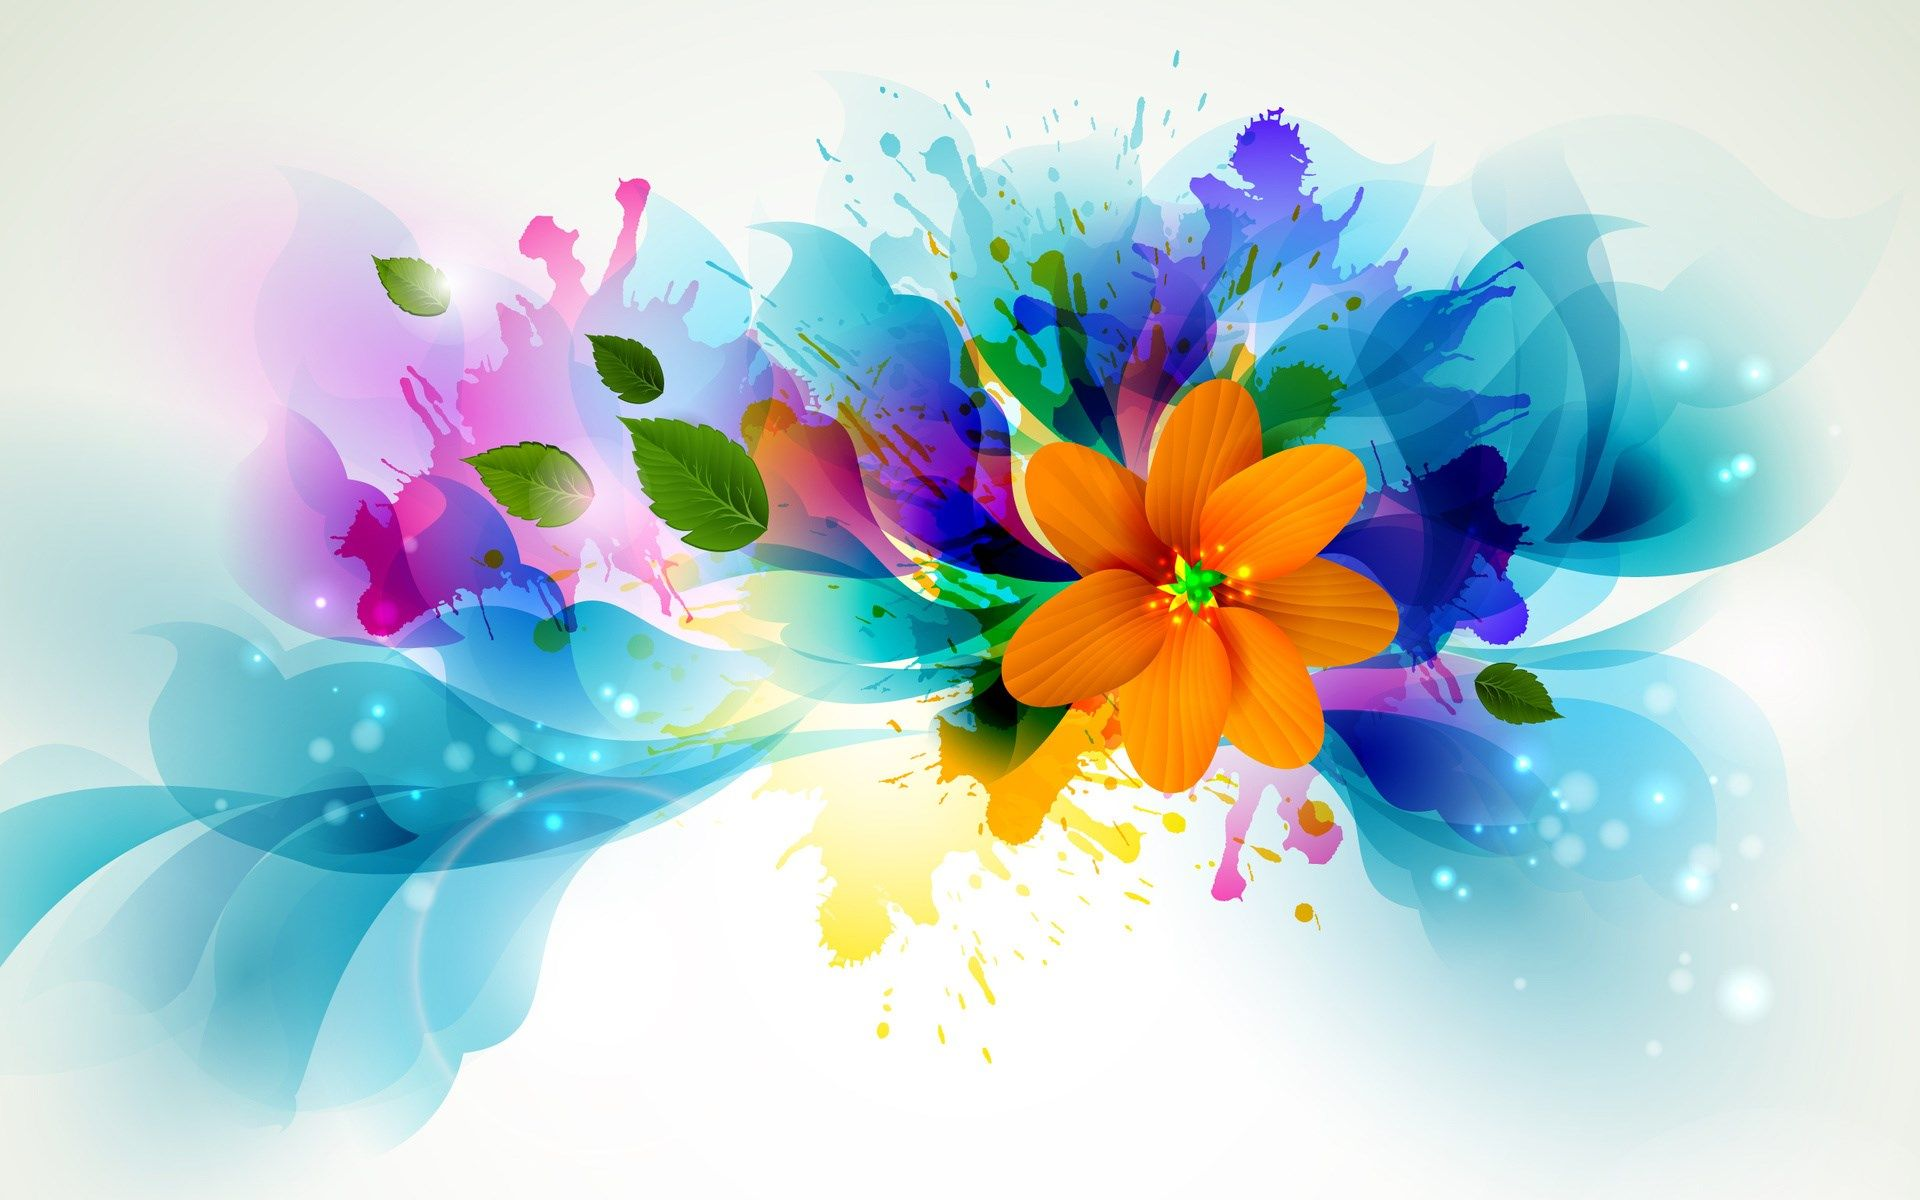 Wallpaper iphone bright - Bright Colorful Abstract Wallpapers For Iphone 5